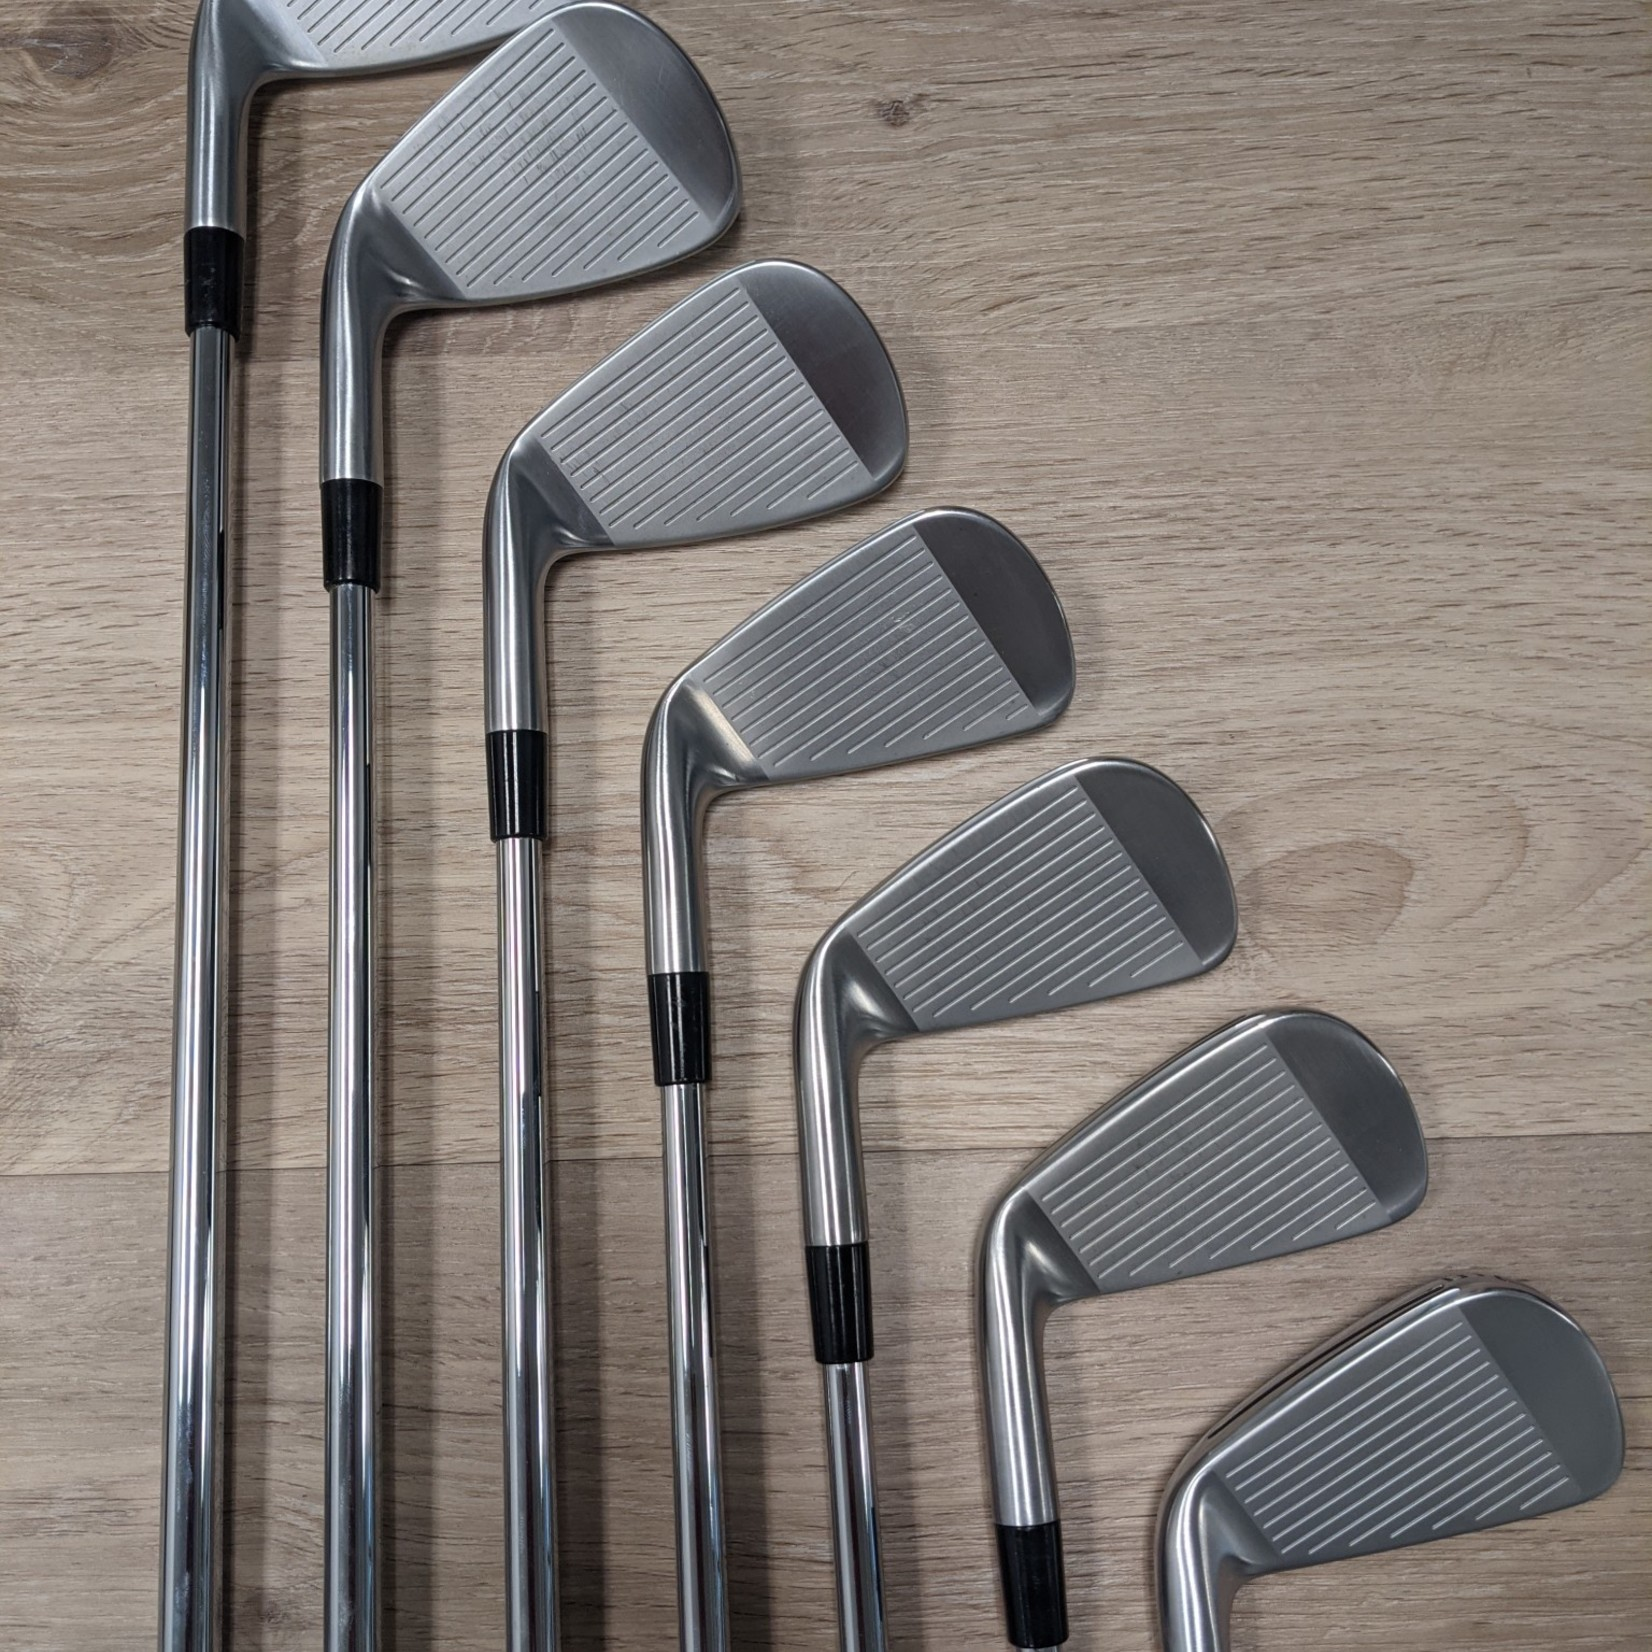 TaylorMade TaylorMade P790 Iron Set 4-PW Project X 6.5 (RH)